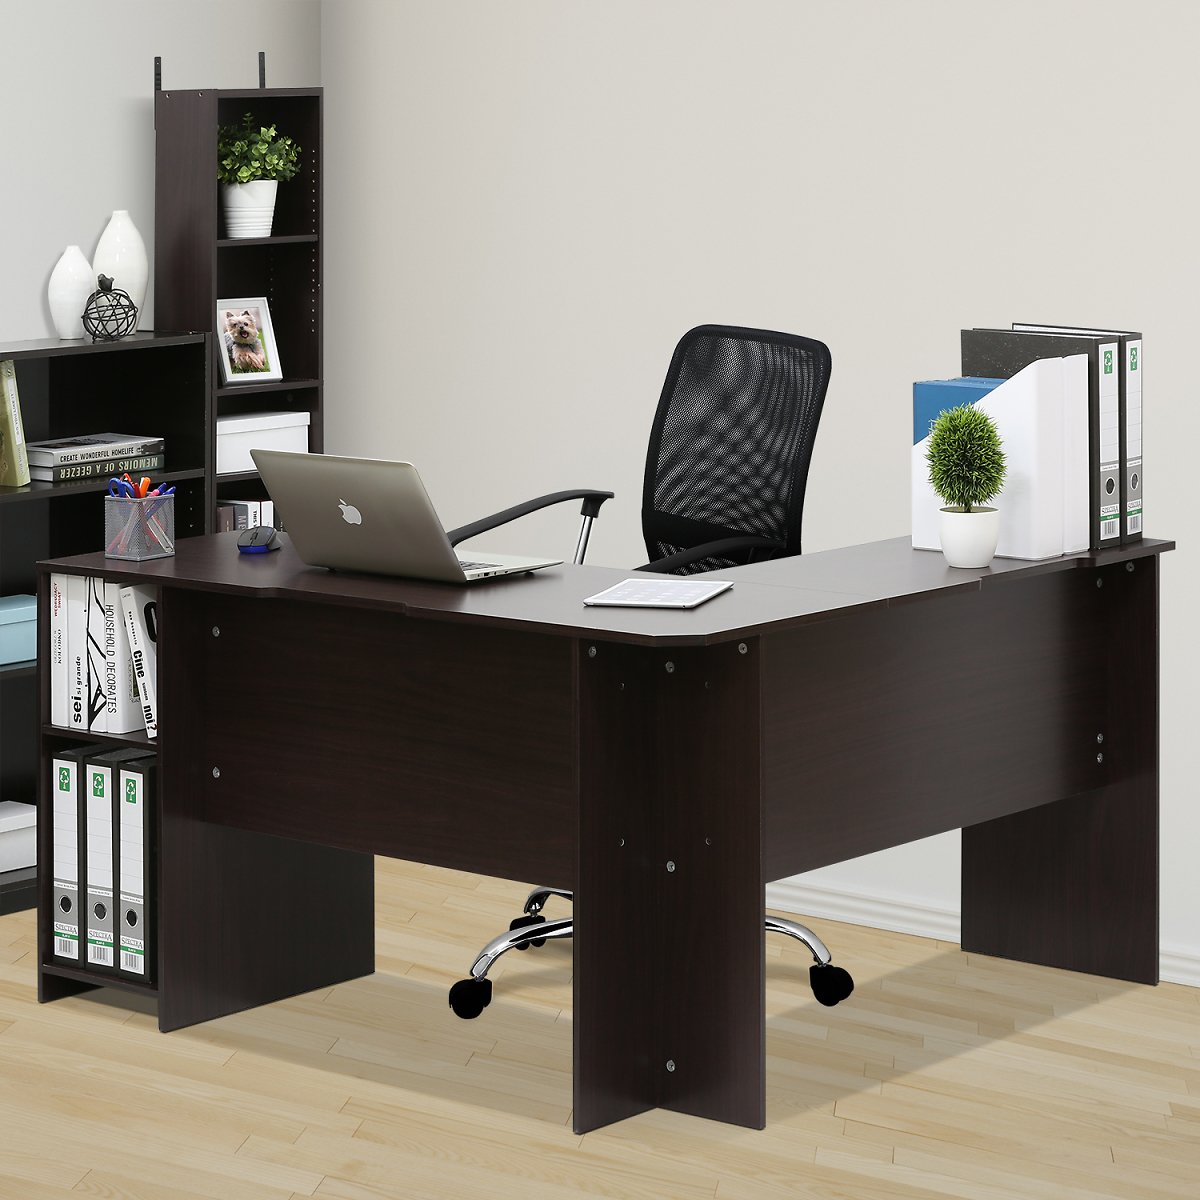 Furinno Indo L-Shaped Desk with Bookshelves, Espresso